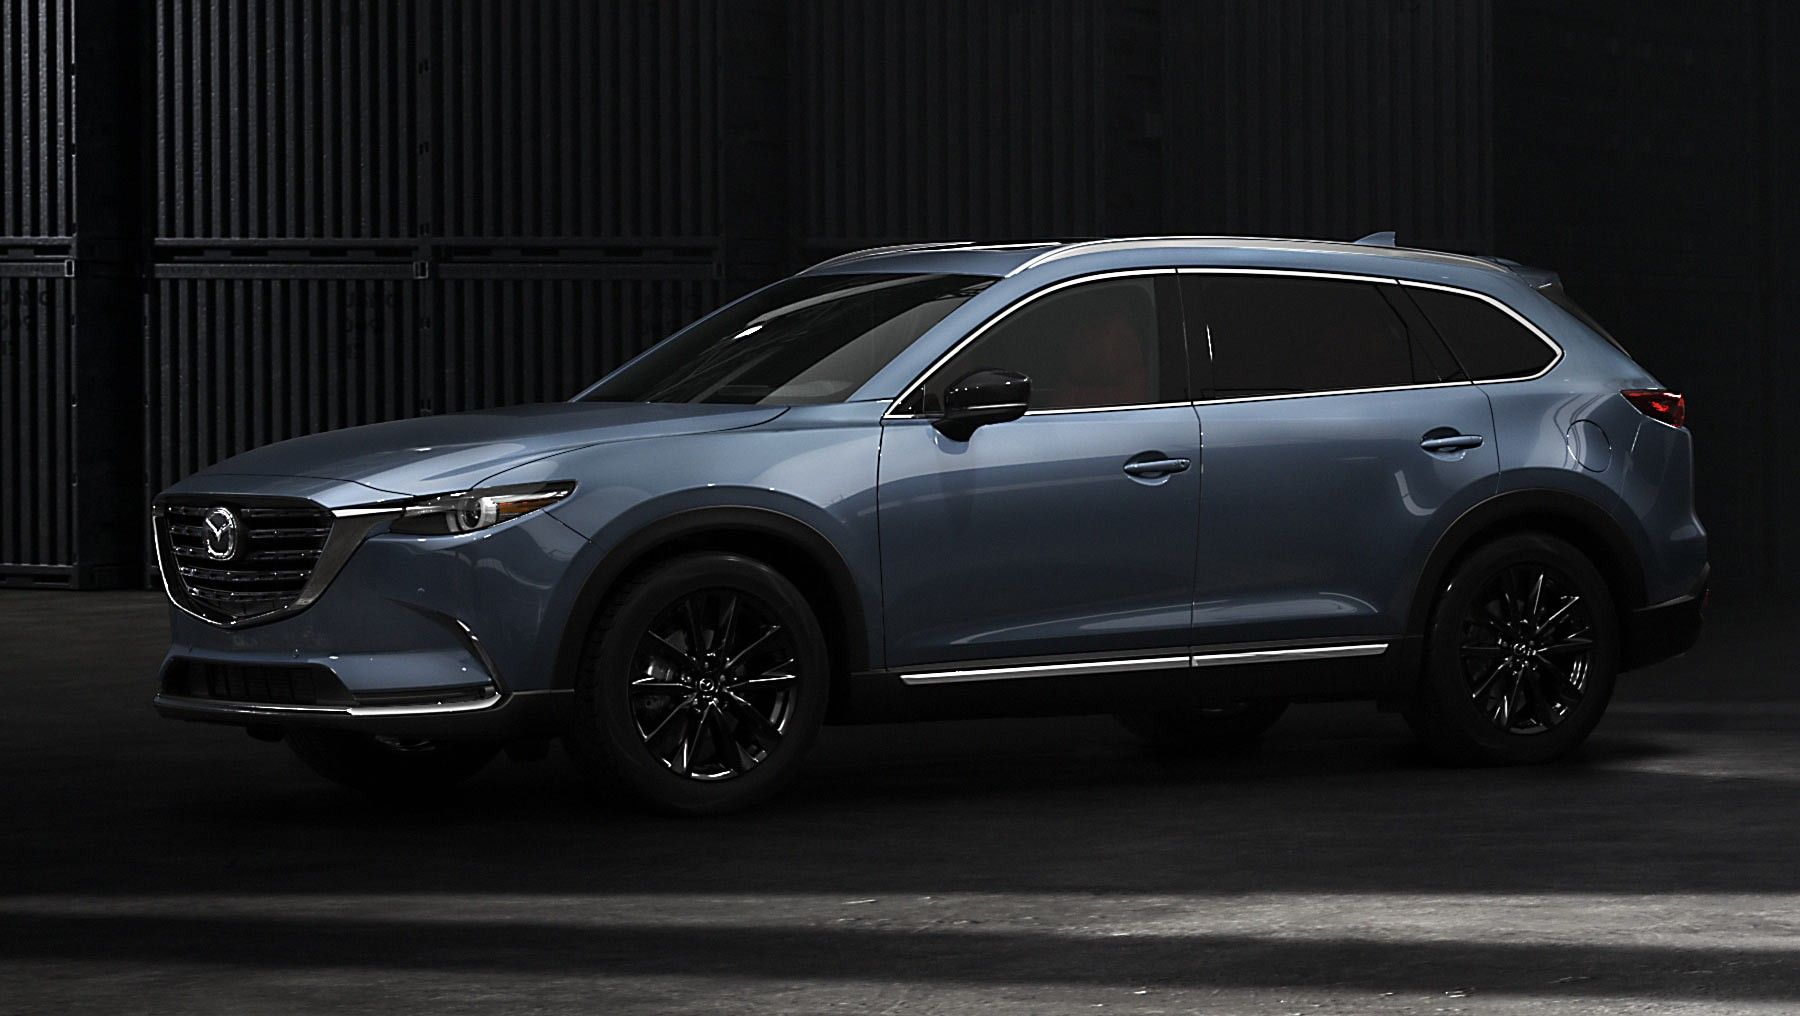 Mazda S New Carbon Editions Are Blackout Models You Can T Get In Black Carscoops In 2021 Mazda Cx 9 Mazda Mazda Cx 7